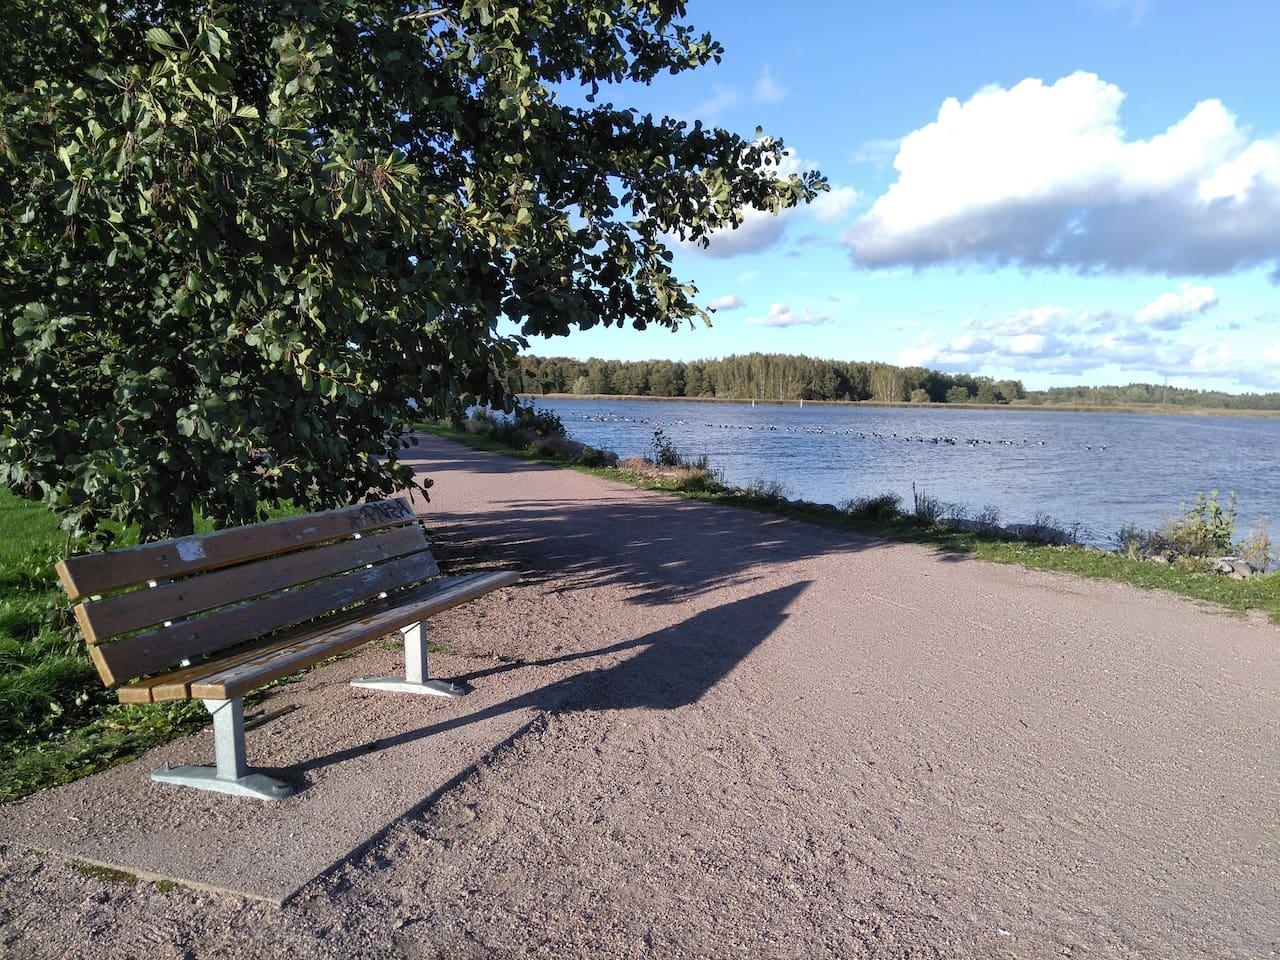 Arabianranta park - only few minutes walk from the apartment.